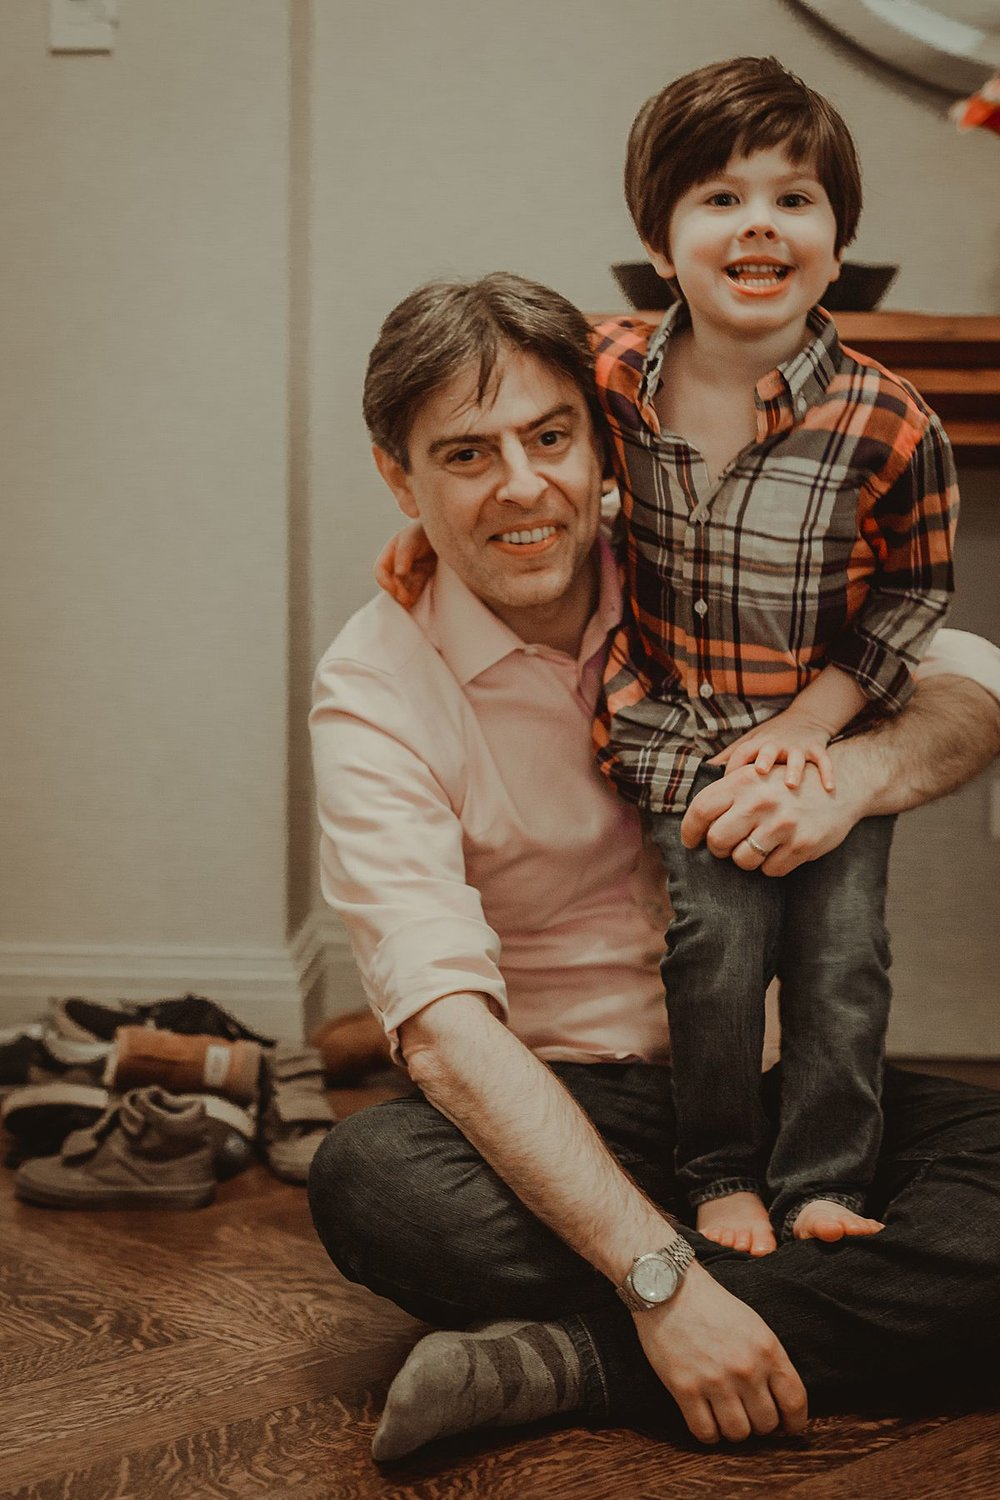 dad and son portrait in nyc living room. photo by nyc family and newborn photographer Krystil McDowall